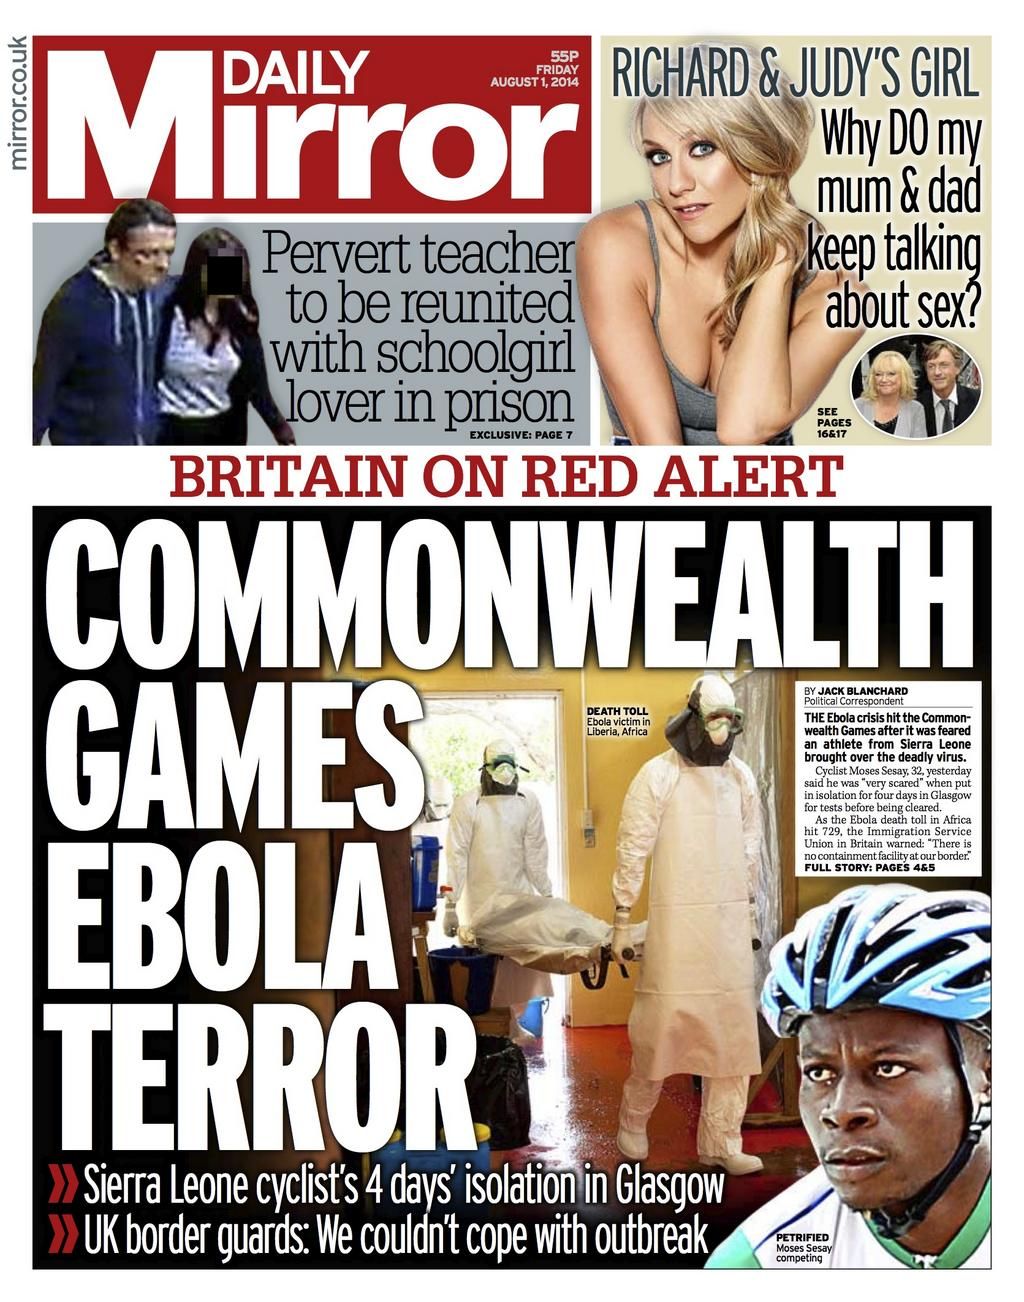 "Friday's Daily Mirror front page - ""Commonwealth Games Ebola terror"" #bbcpapers http://t.co/V9vdu8y1ad via @suttonnick"